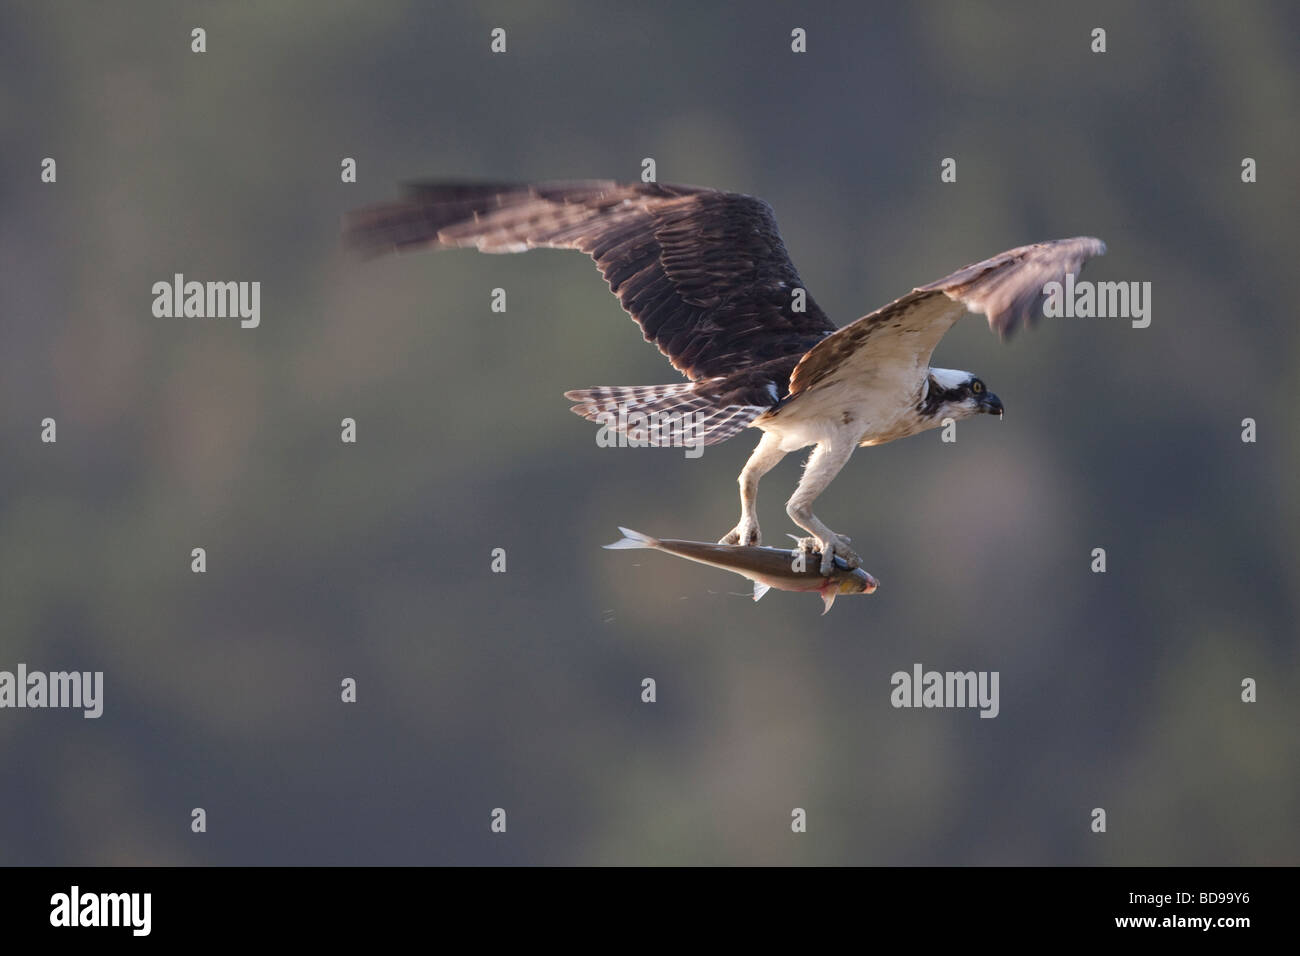 Osprey flying with a fish, Point Reyes National Seashore, Caifornia, USA - Stock Image